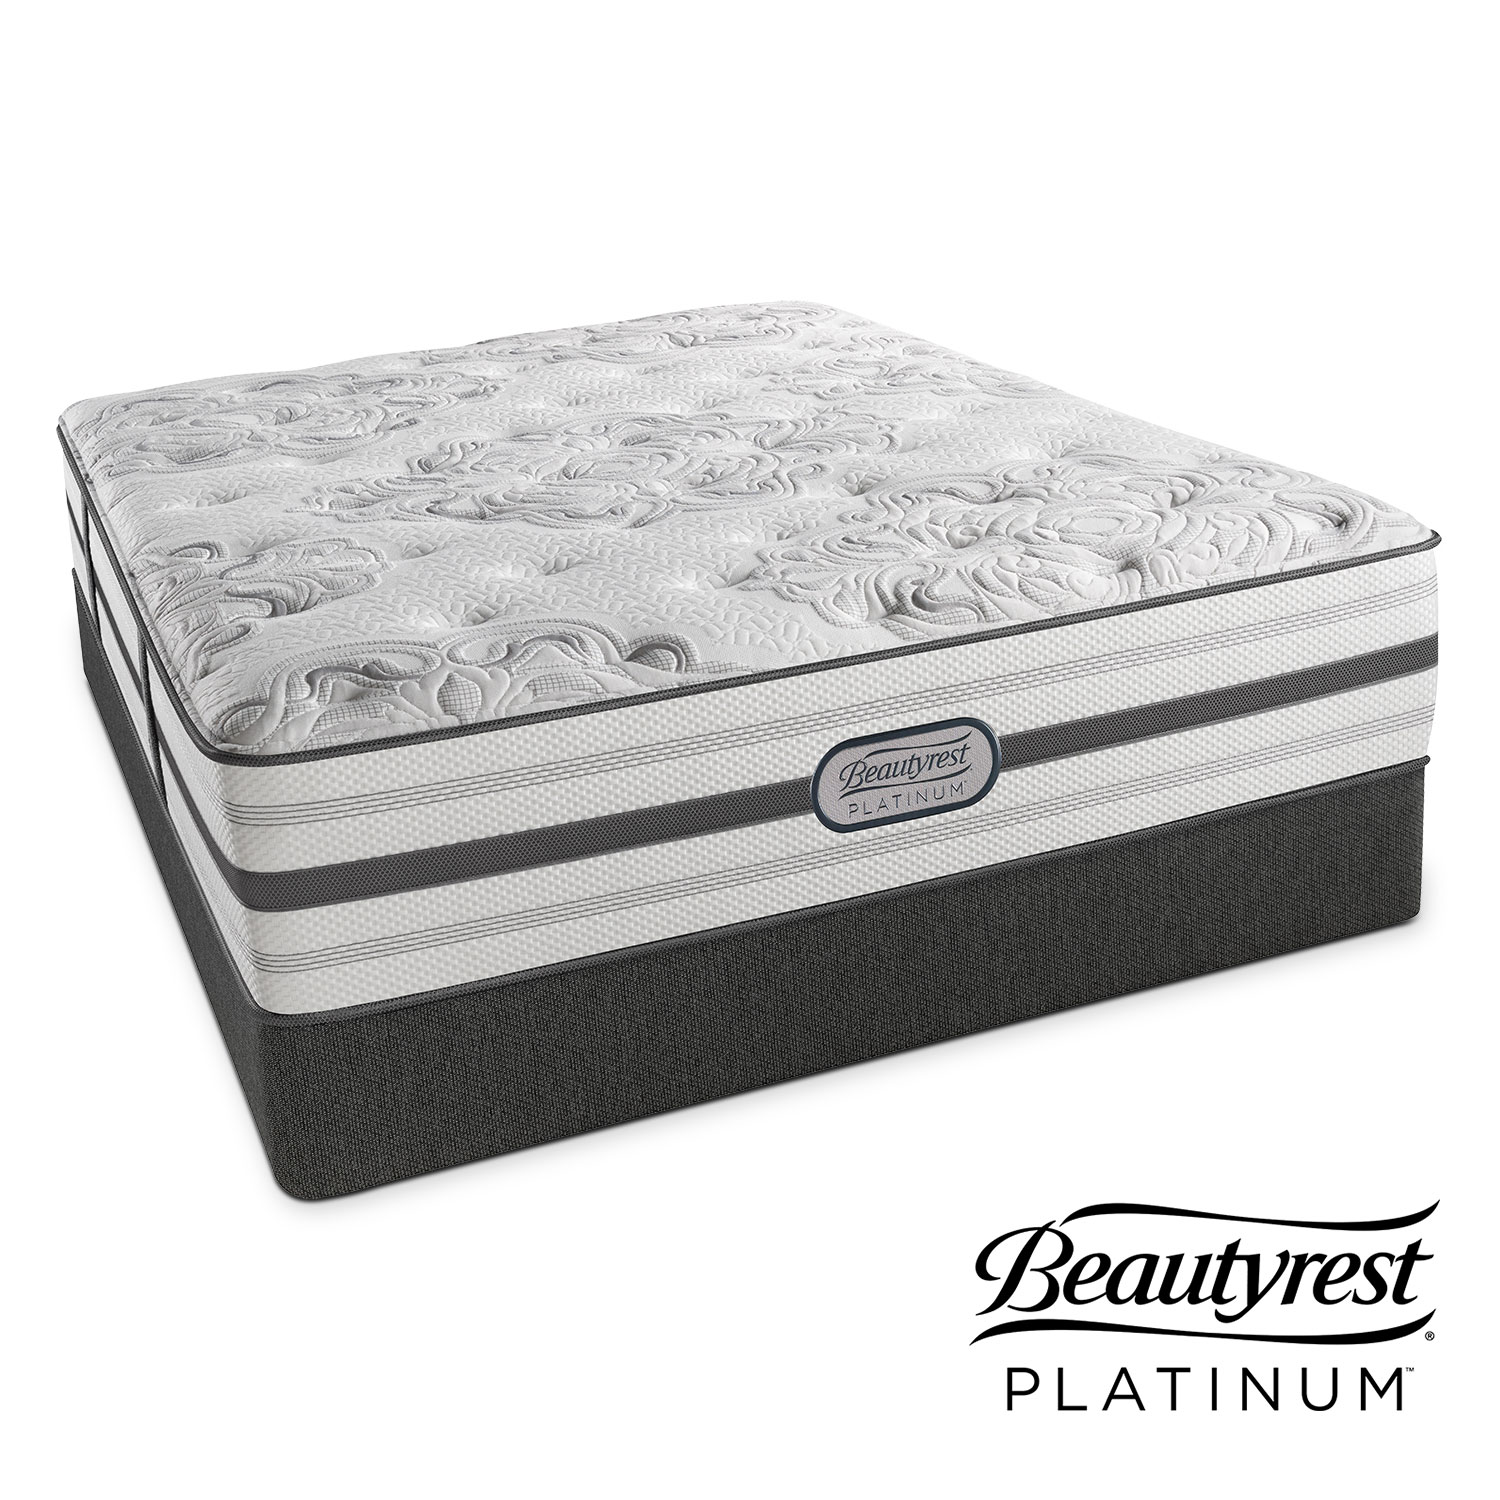 Mattresses and Bedding - Alexandria King Mattress/Split Foundation Set